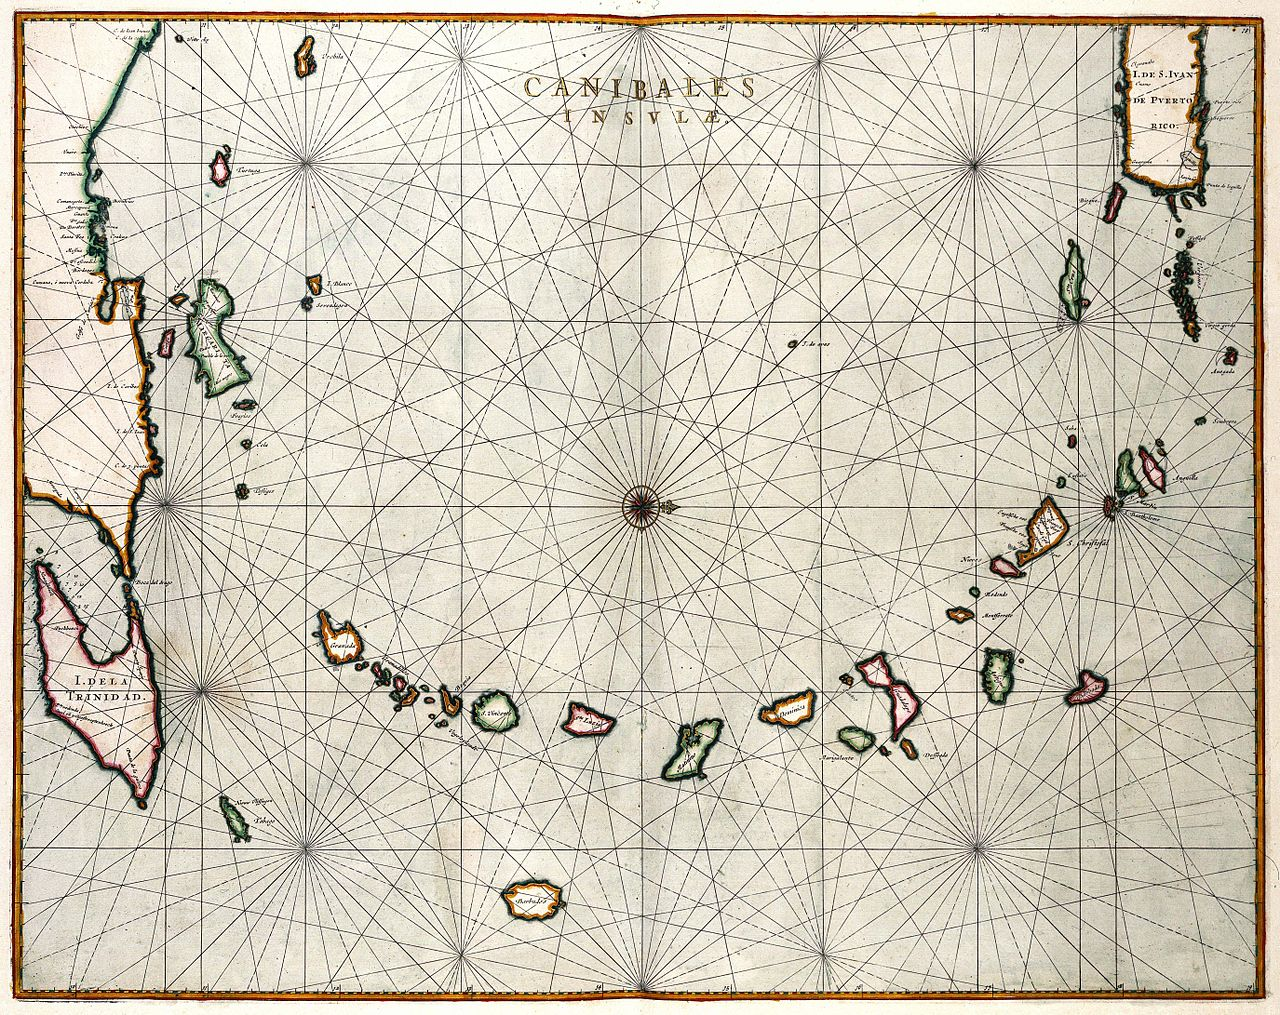 """Joan Blaeu's """"Canibales Insulae"""" map of cannibal islands in 'Atlas Major' (1662) (via KB, National Library of the Netherlands)"""